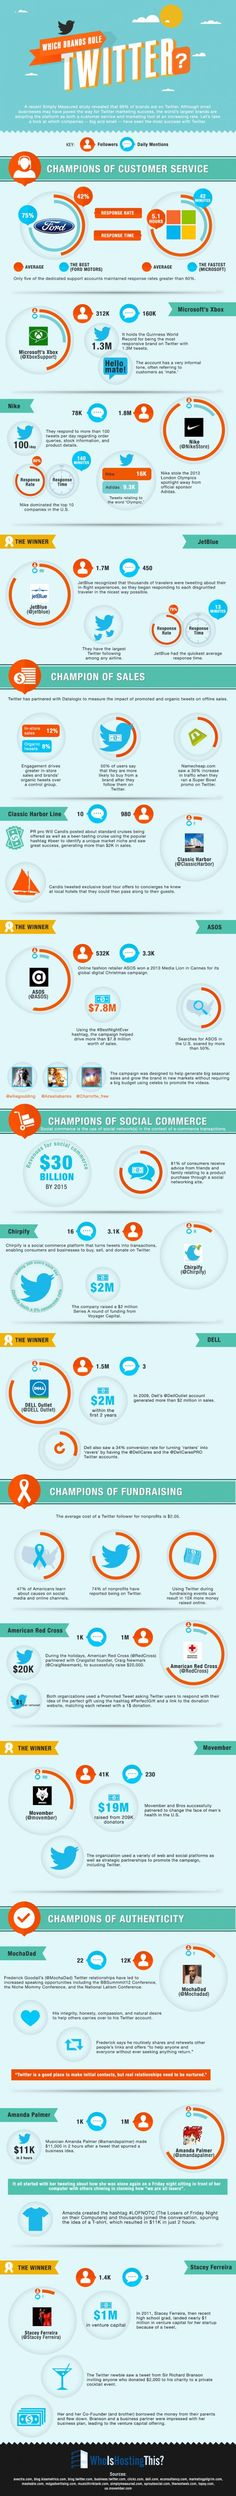 Determining top performance on #Twitter requires more than just follower count. #Brands that rule Twitter. #infographic